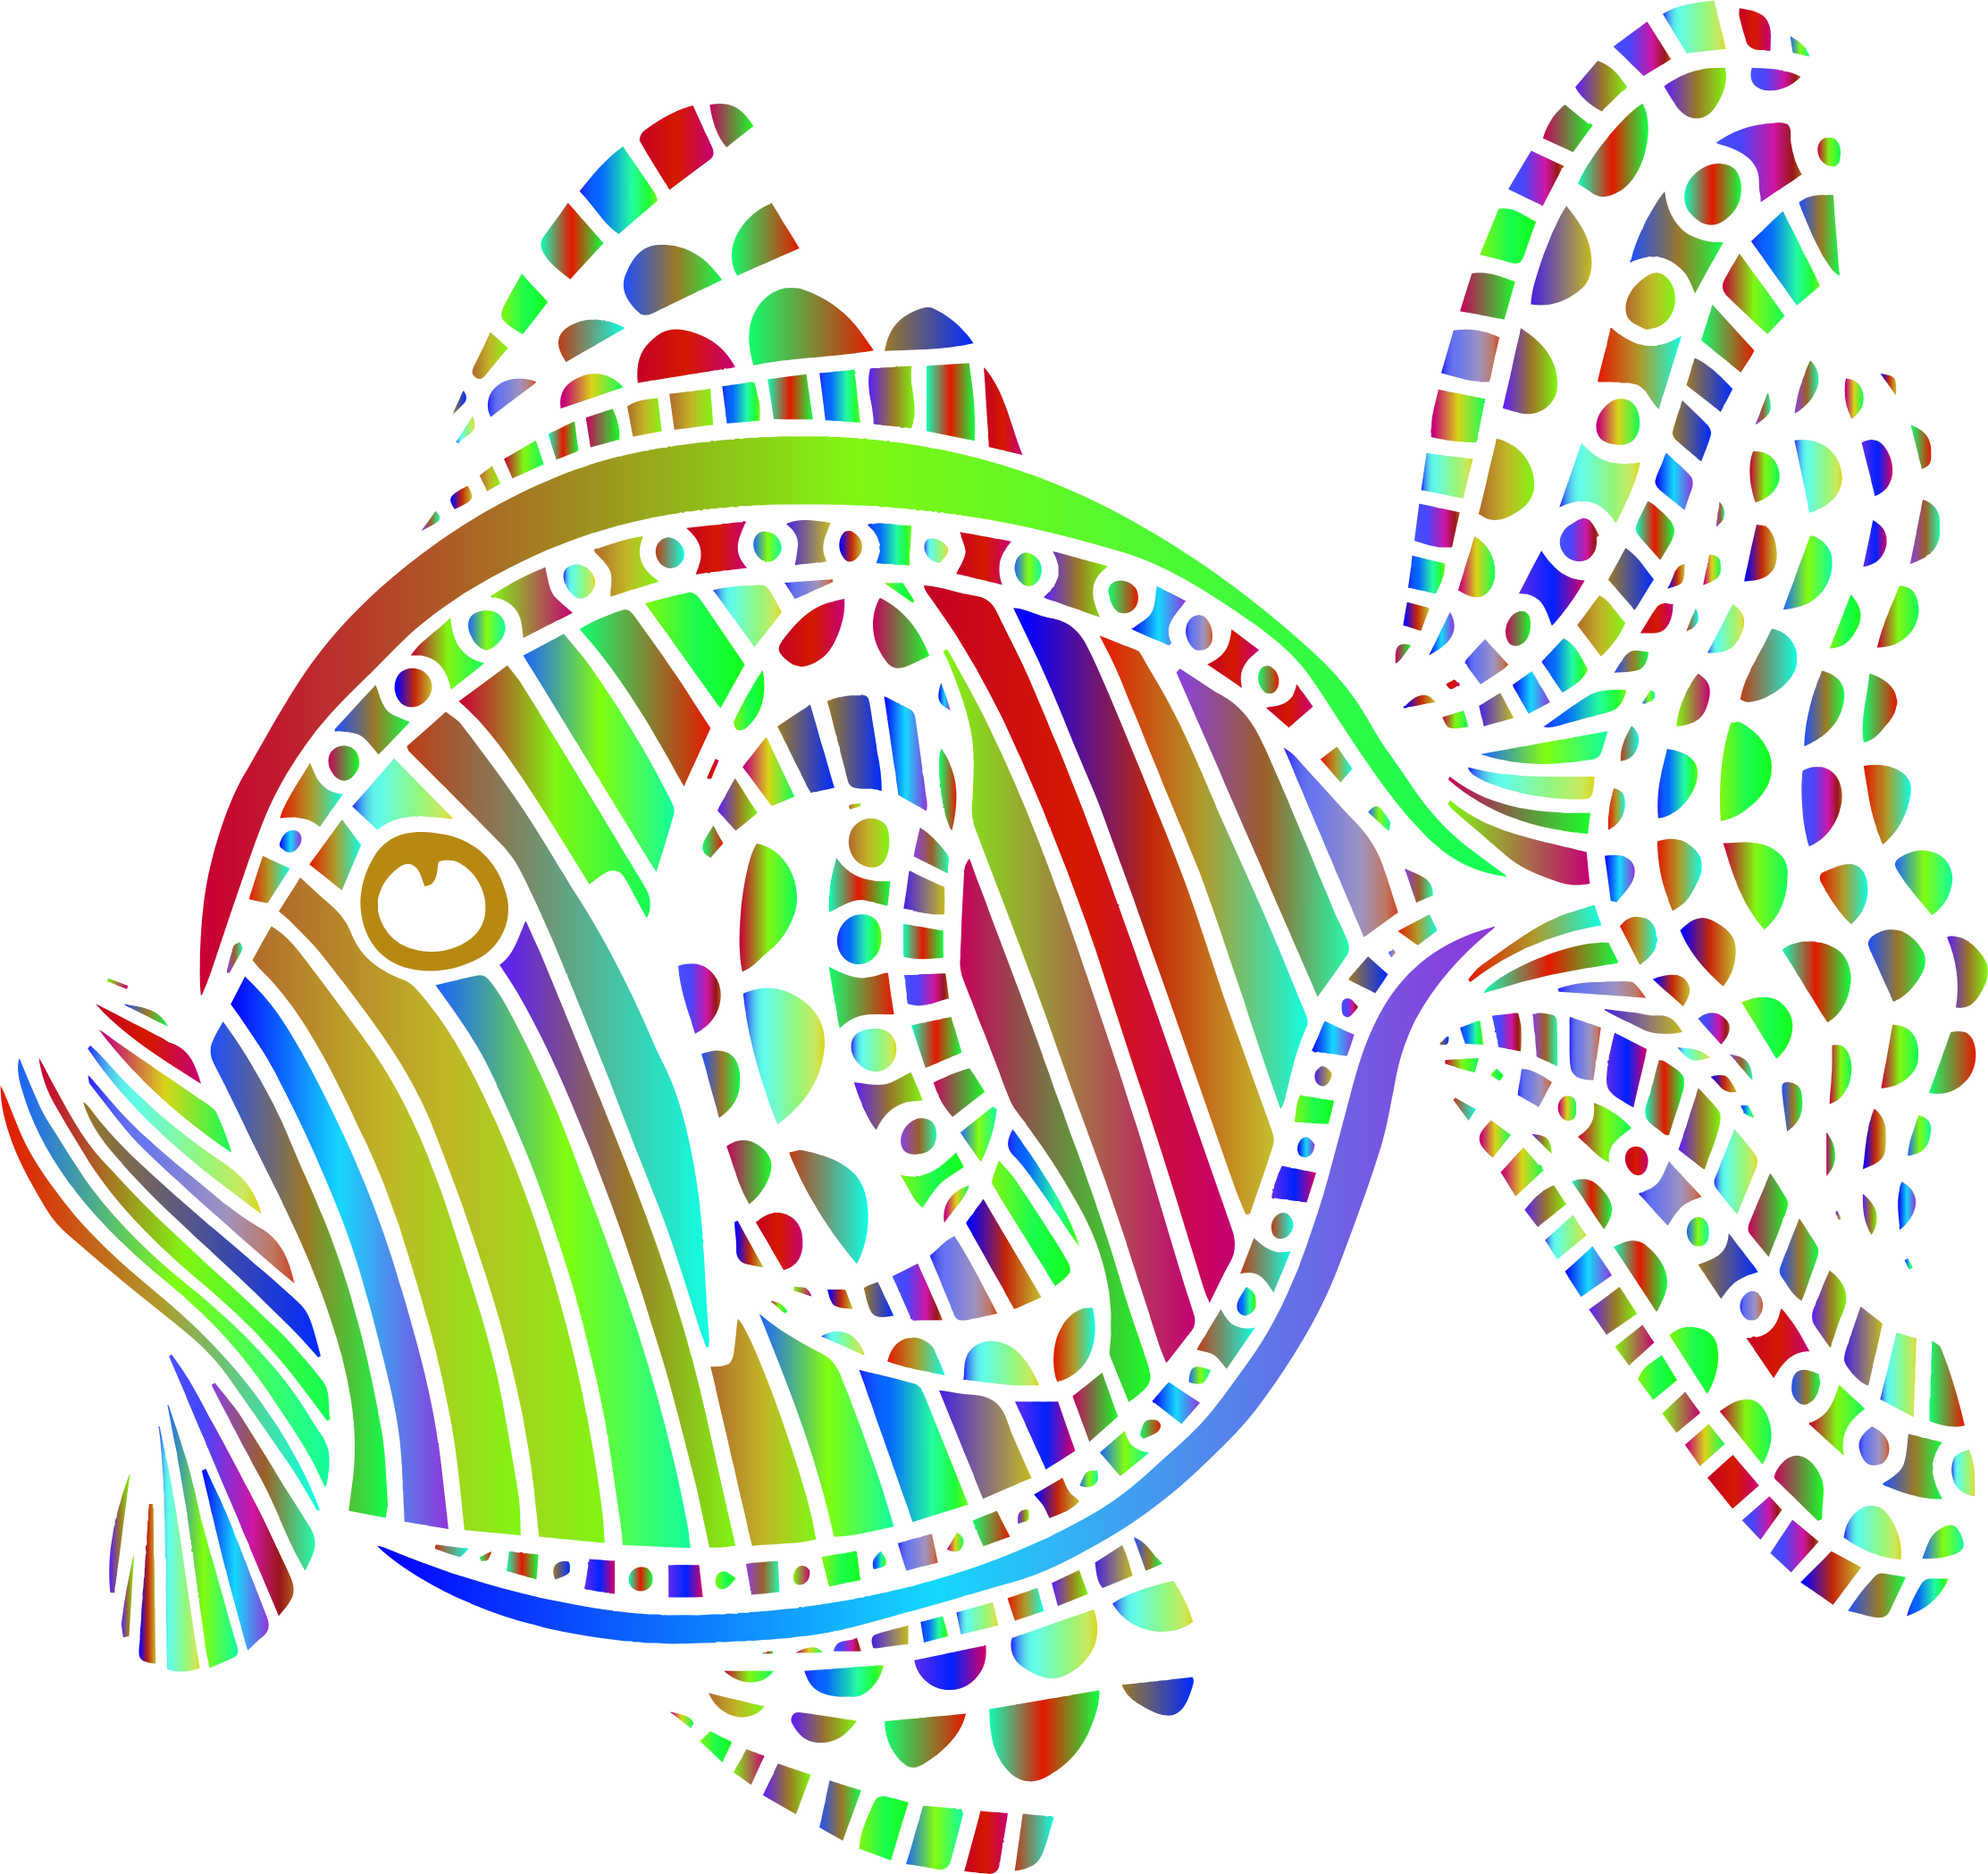 Clipart fish colorful. Abstract big image png